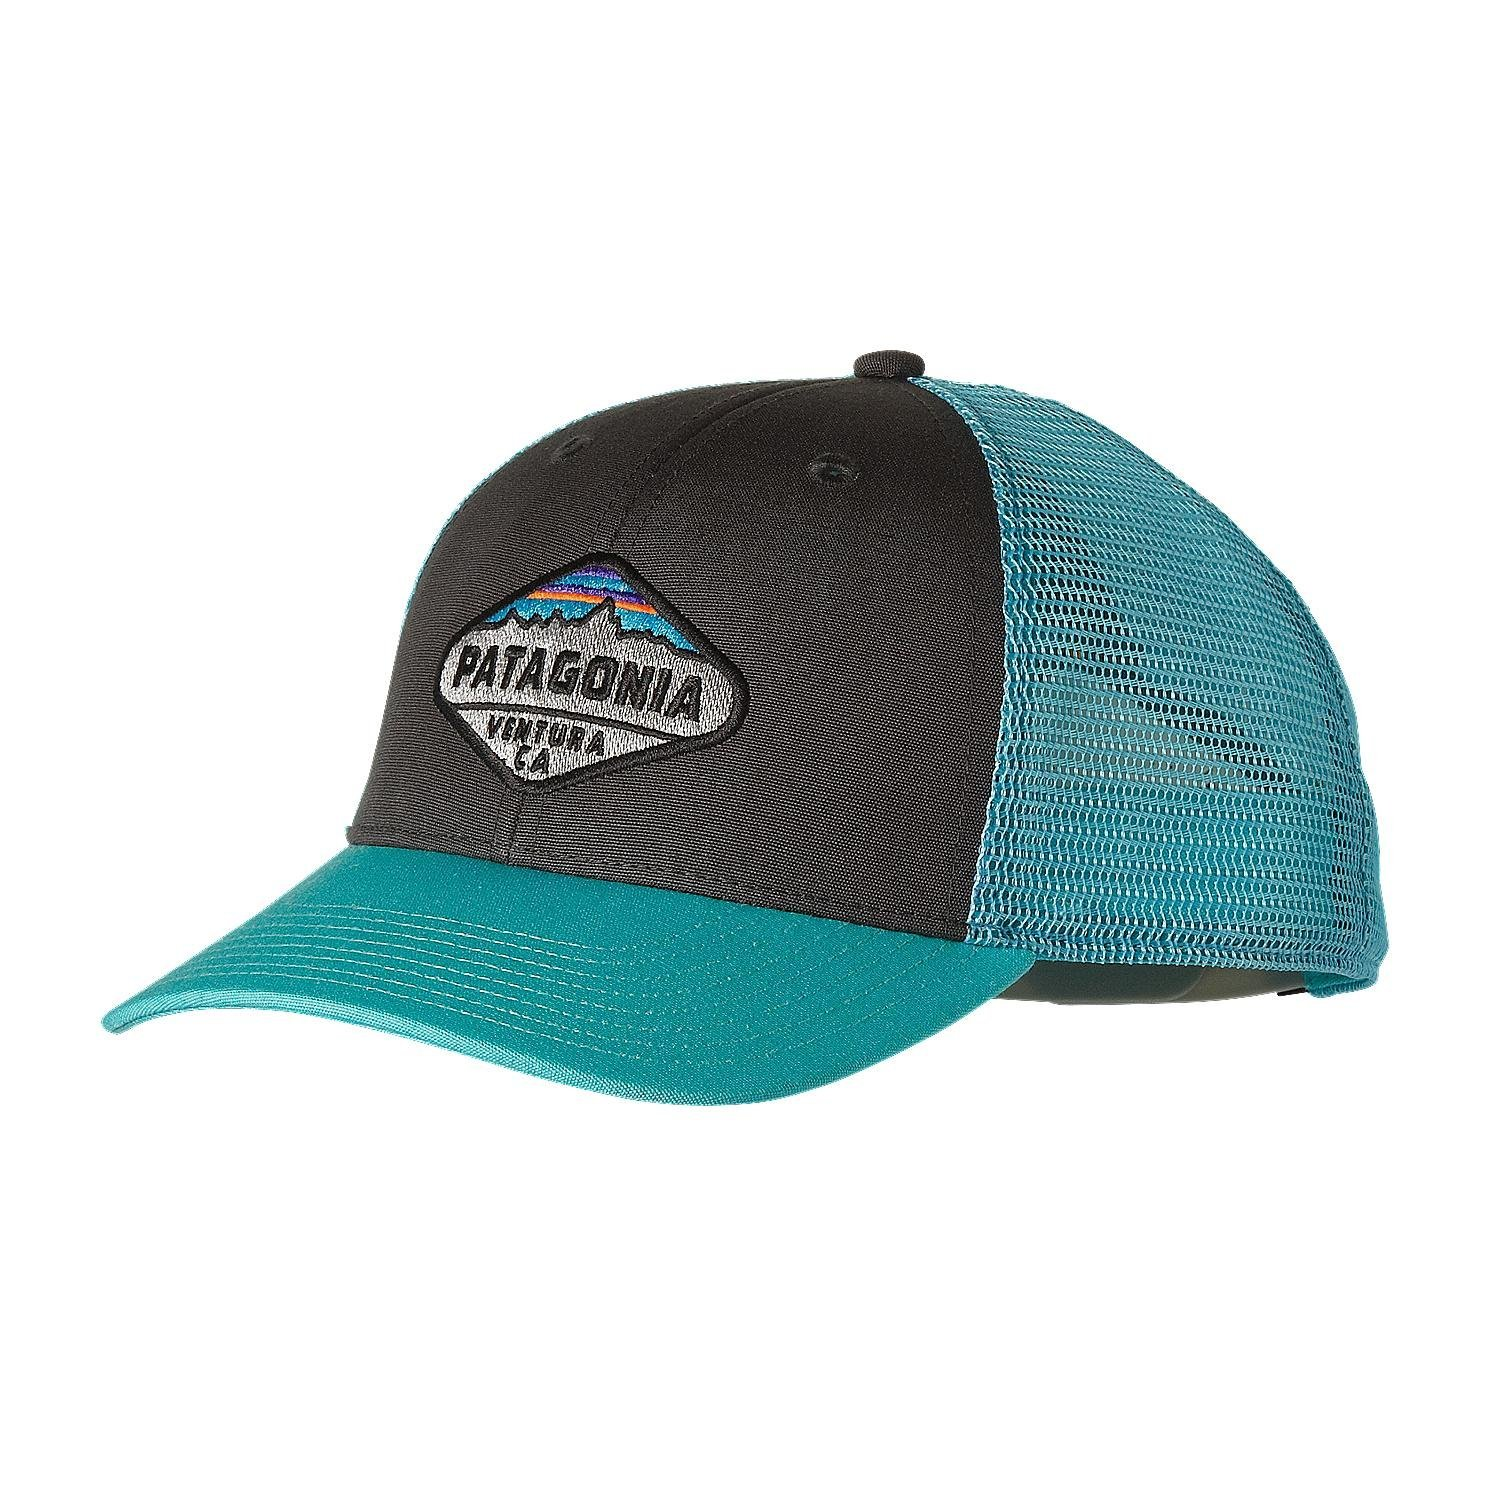 70dc0613 Buy Patagonia Geodesic Flying Fish Trucker Hat Camo in Cheap Price ...